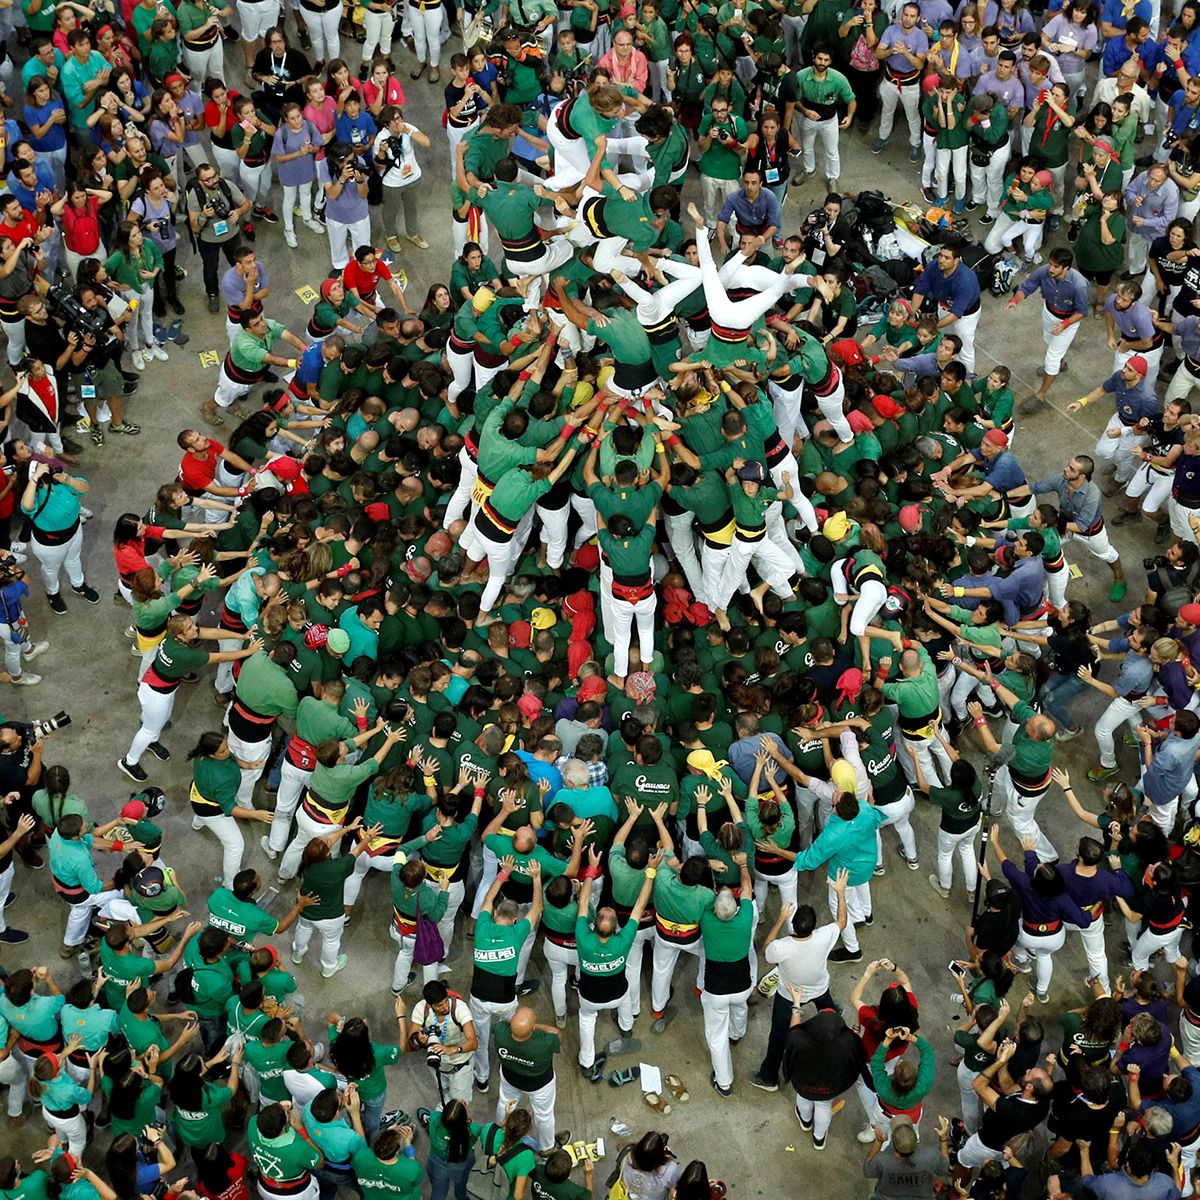 09 h2018-10-07T103010Z_360095917_RC13D47B5A60_RTRMADP_3_SPAIN-CULTURE-HUMAN-TOWERS